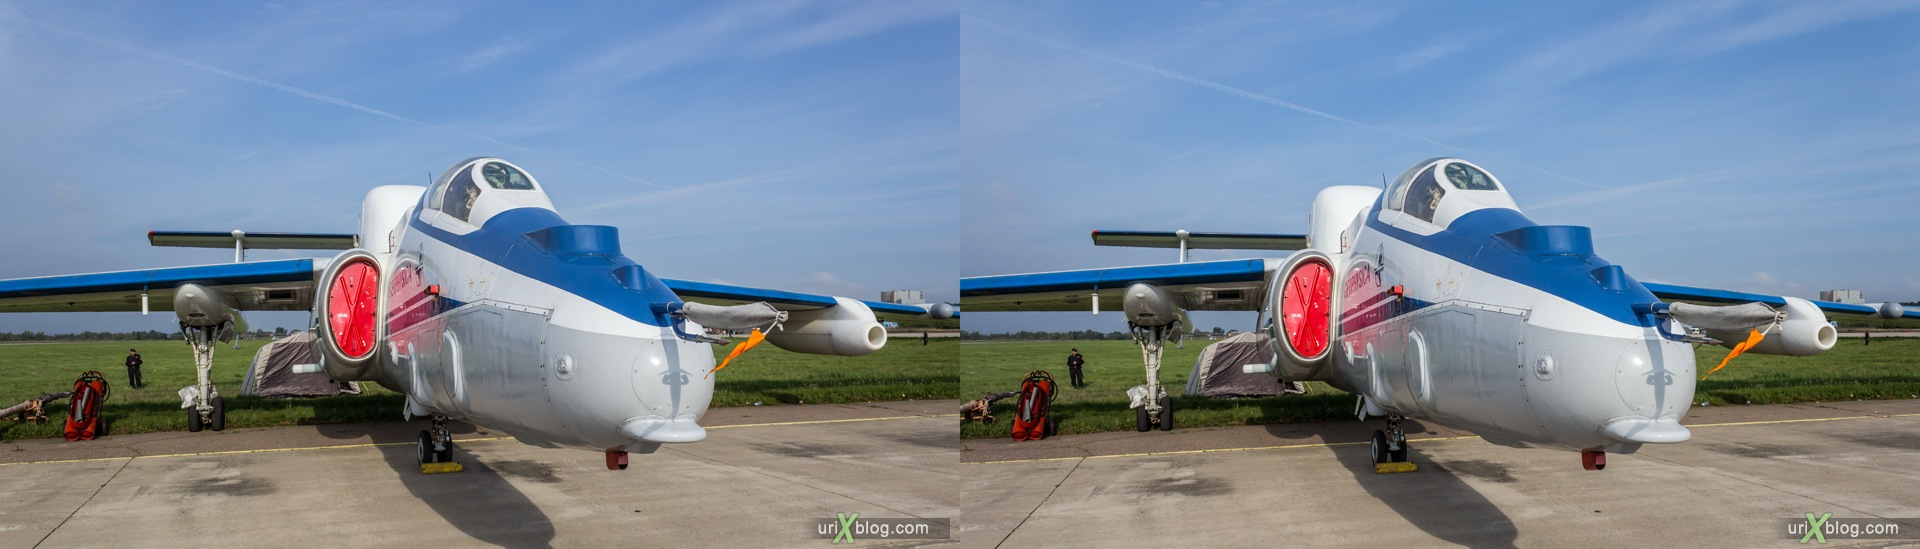 2013, M-55 Geophysica, MAKS, International Aviation and Space Salon, Russia, Ramenskoye airfield, airplane, 3D, stereo pair, cross-eyed, crossview, cross view stereo pair, stereoscopic